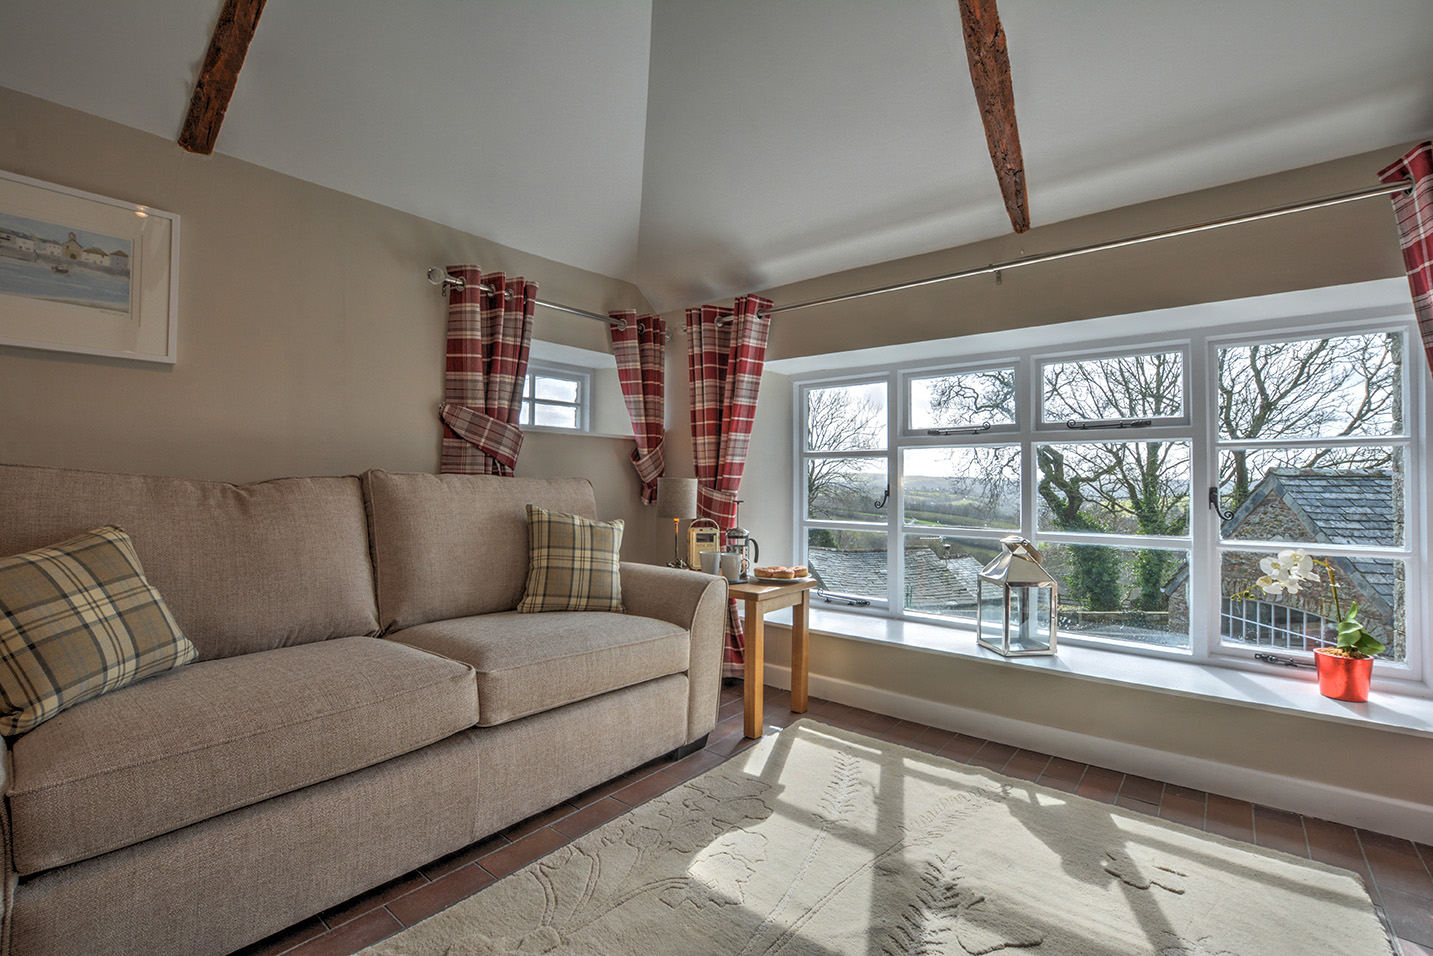 The lounge area of Goosehill luxury self catering converted barn holiday cottage at Penrose Burden in North Cornwall.jpg